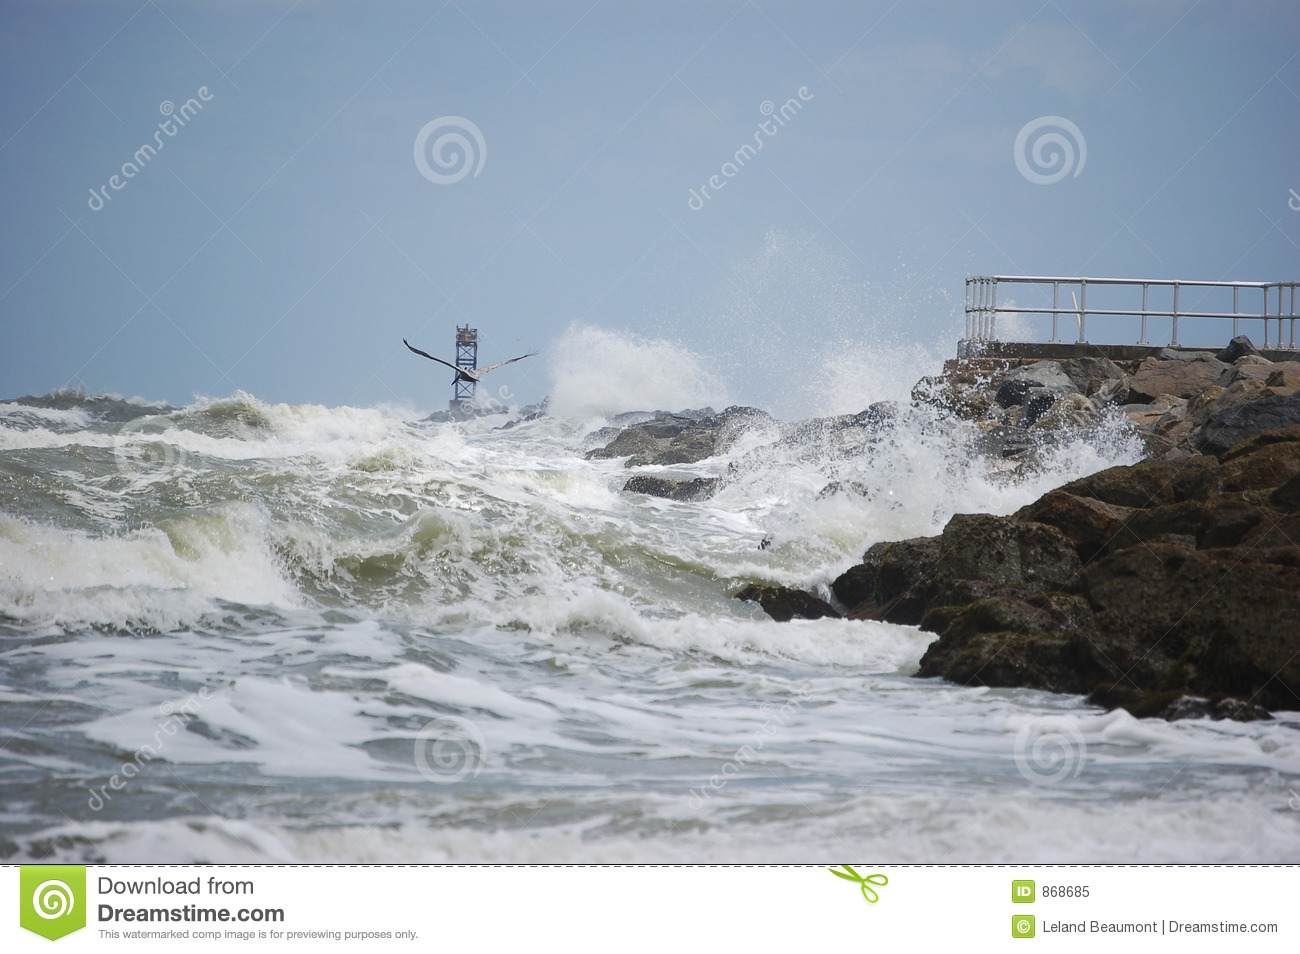 Breakers on the Jetty